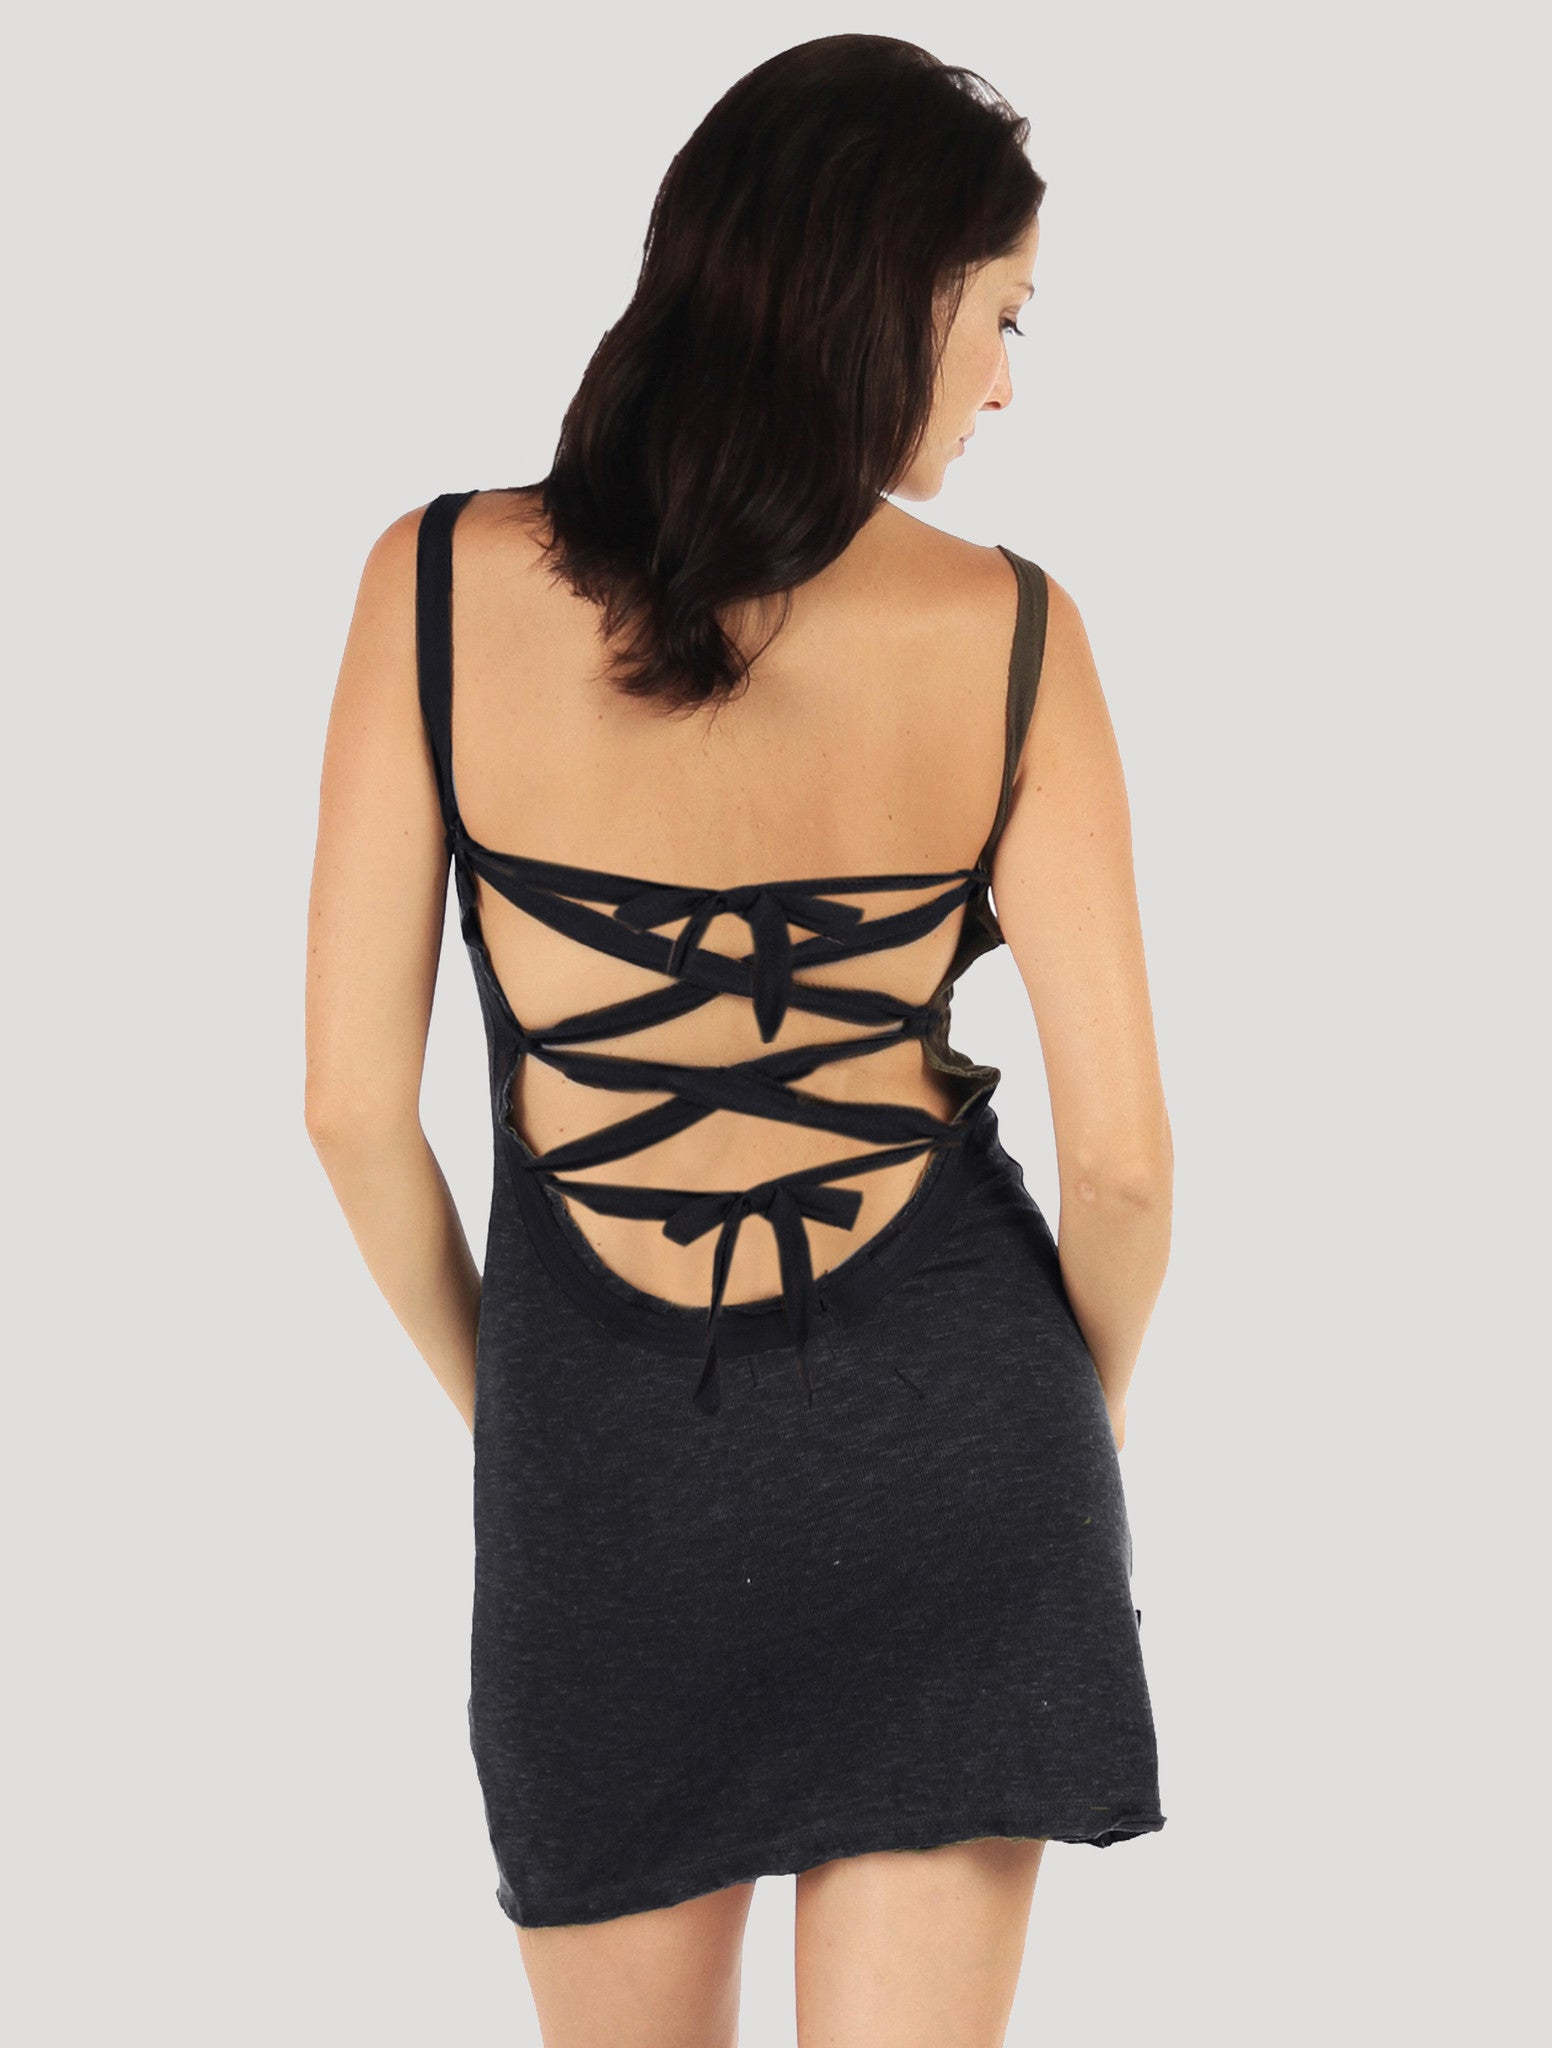 Coconut' Backless Mini Dress - Psylo